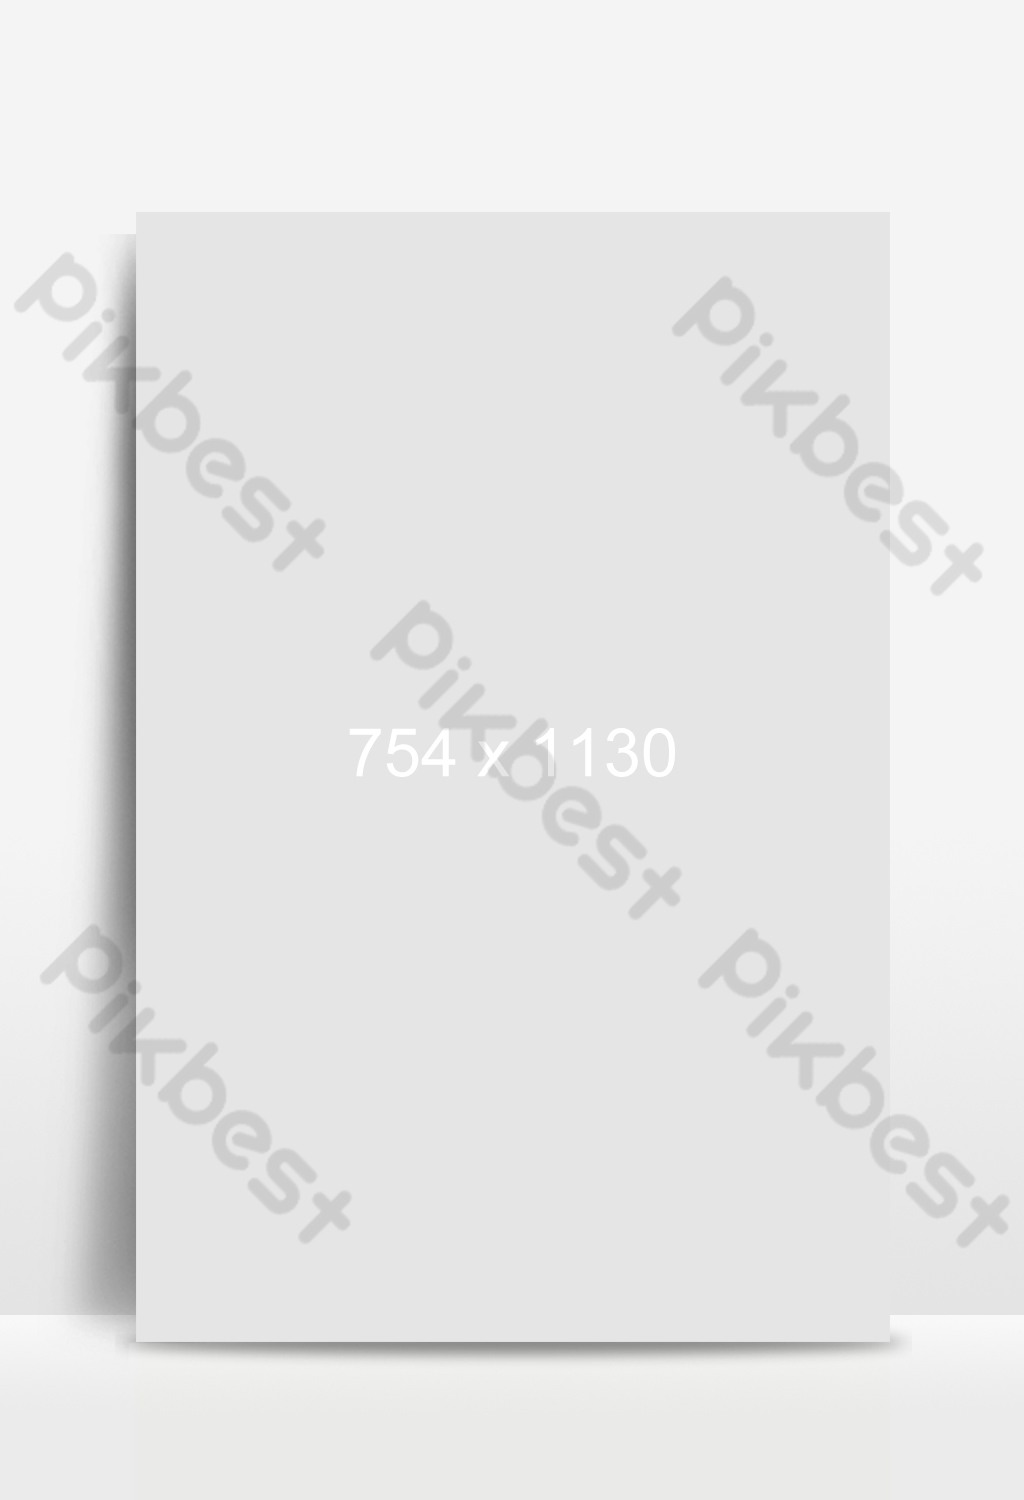 Simple Cartoon Sports Swimming Poster Background Backgrounds Psd Free Download Pikbest